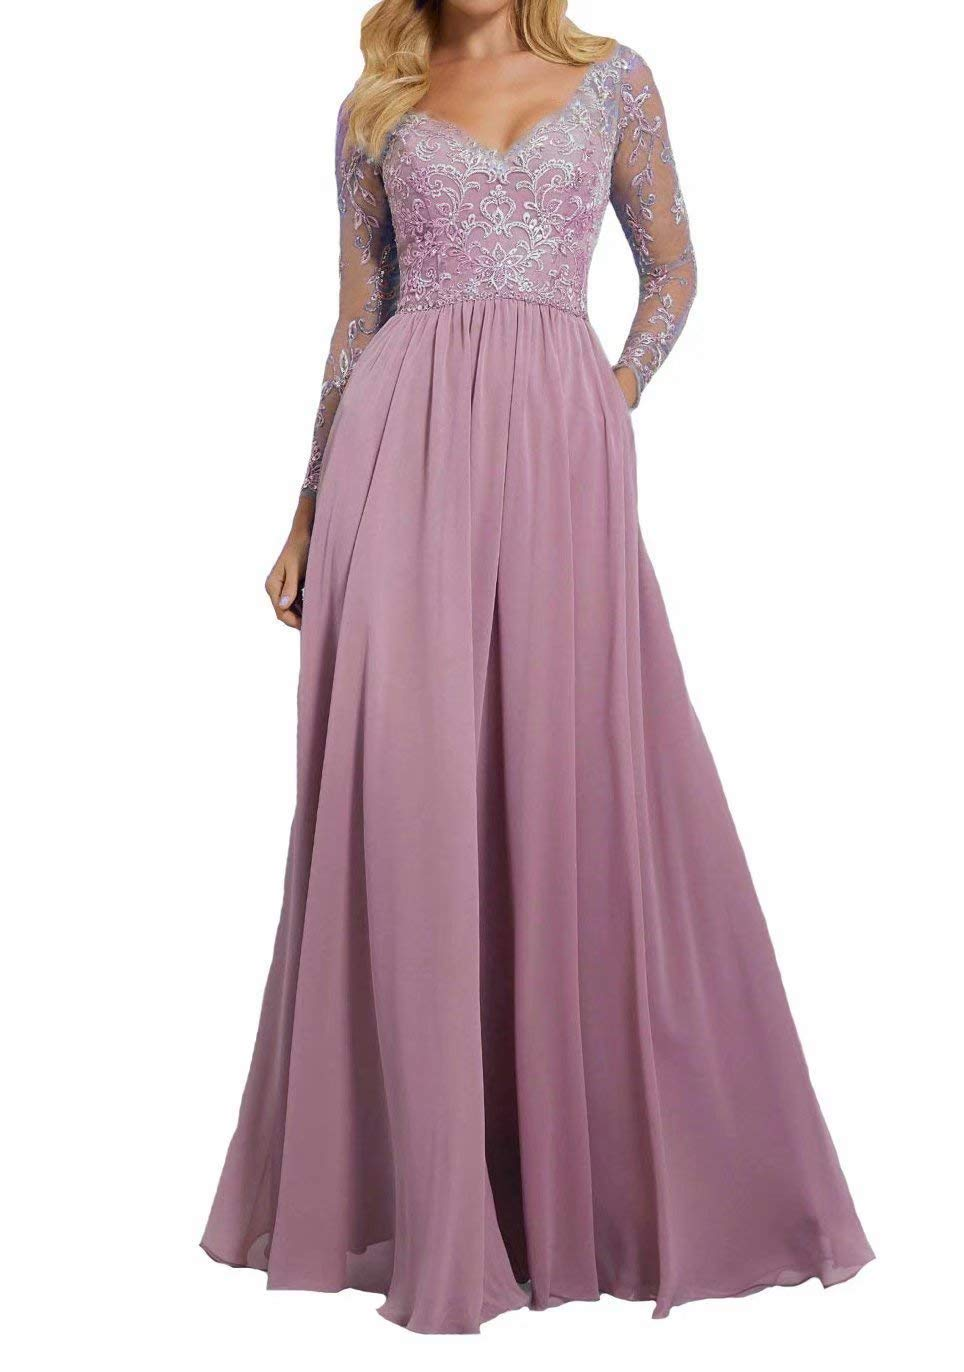 JOFE Women's Long Sleeves Mother of The Bride Dresse Lace Sweetheart Prom Party Dresses Rose Pink Extra Fabric